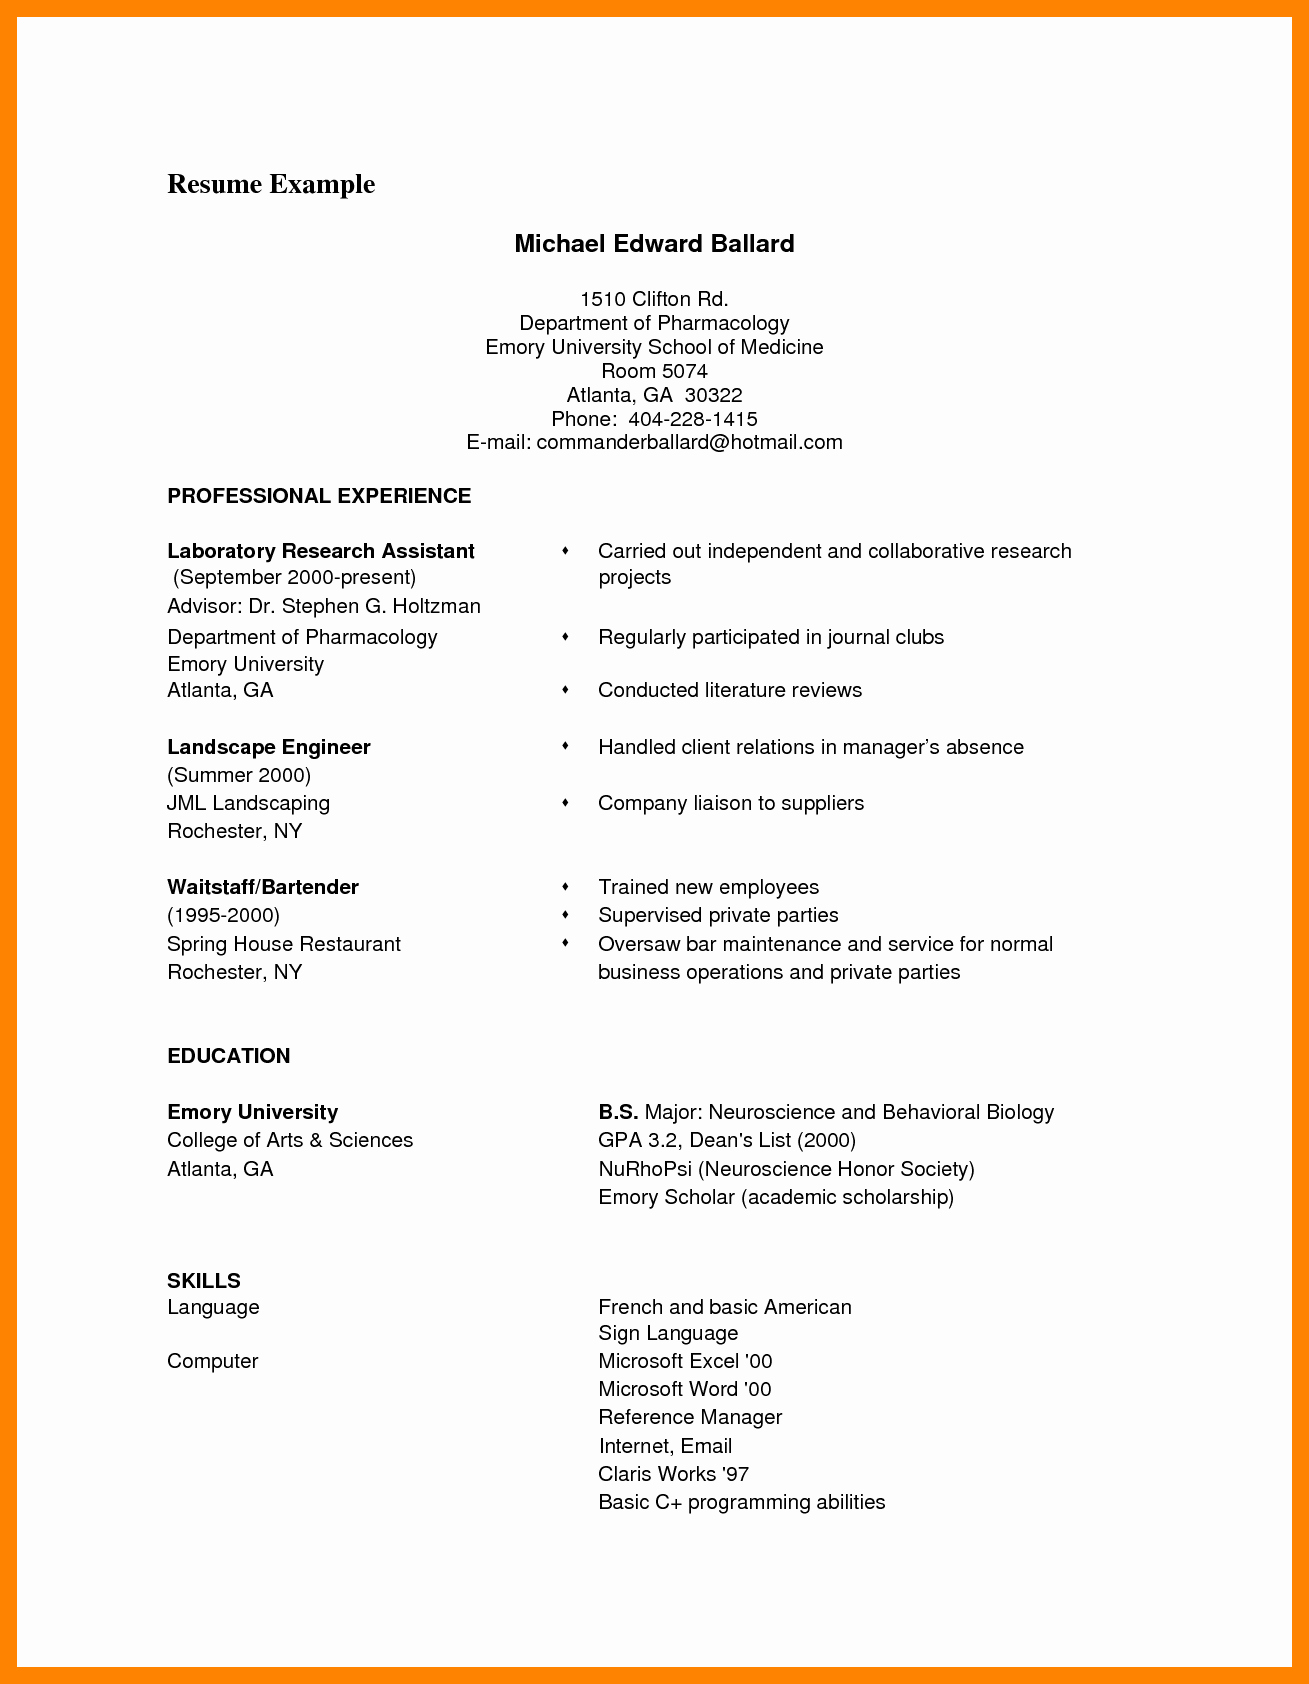 Curriculum Vitae Examples Pdf Best Of 12 Cv Letter Sample Pdf